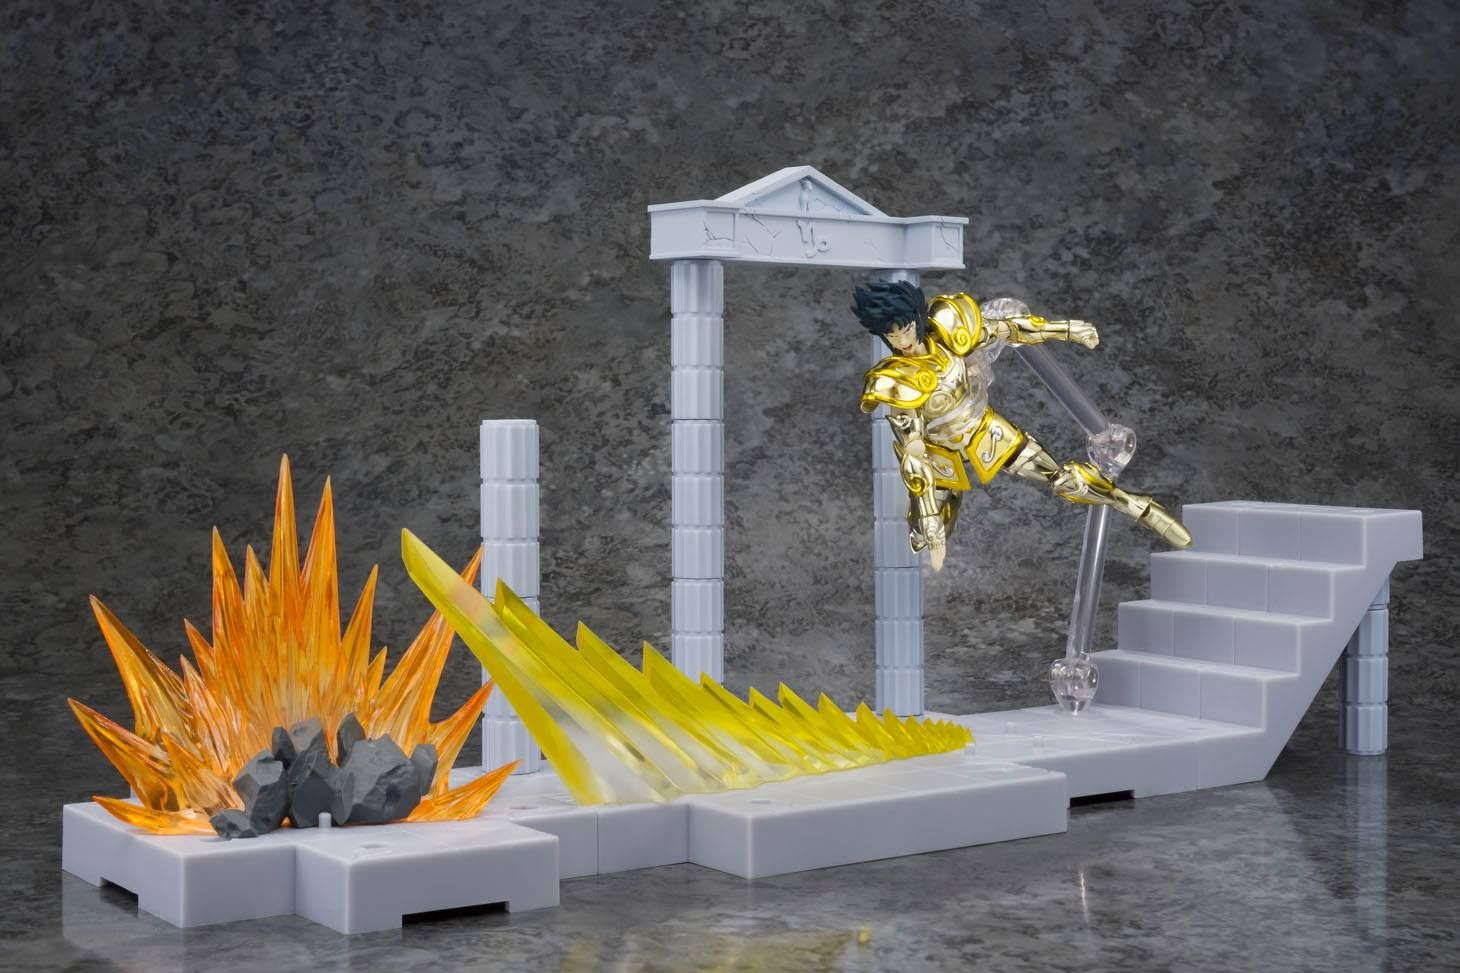 goodie - Shura chevalier d'or du Capricorne - D.D. Panoramation Ver. Glittering Excalibur in the Palace of the Rock Goat - Bandai